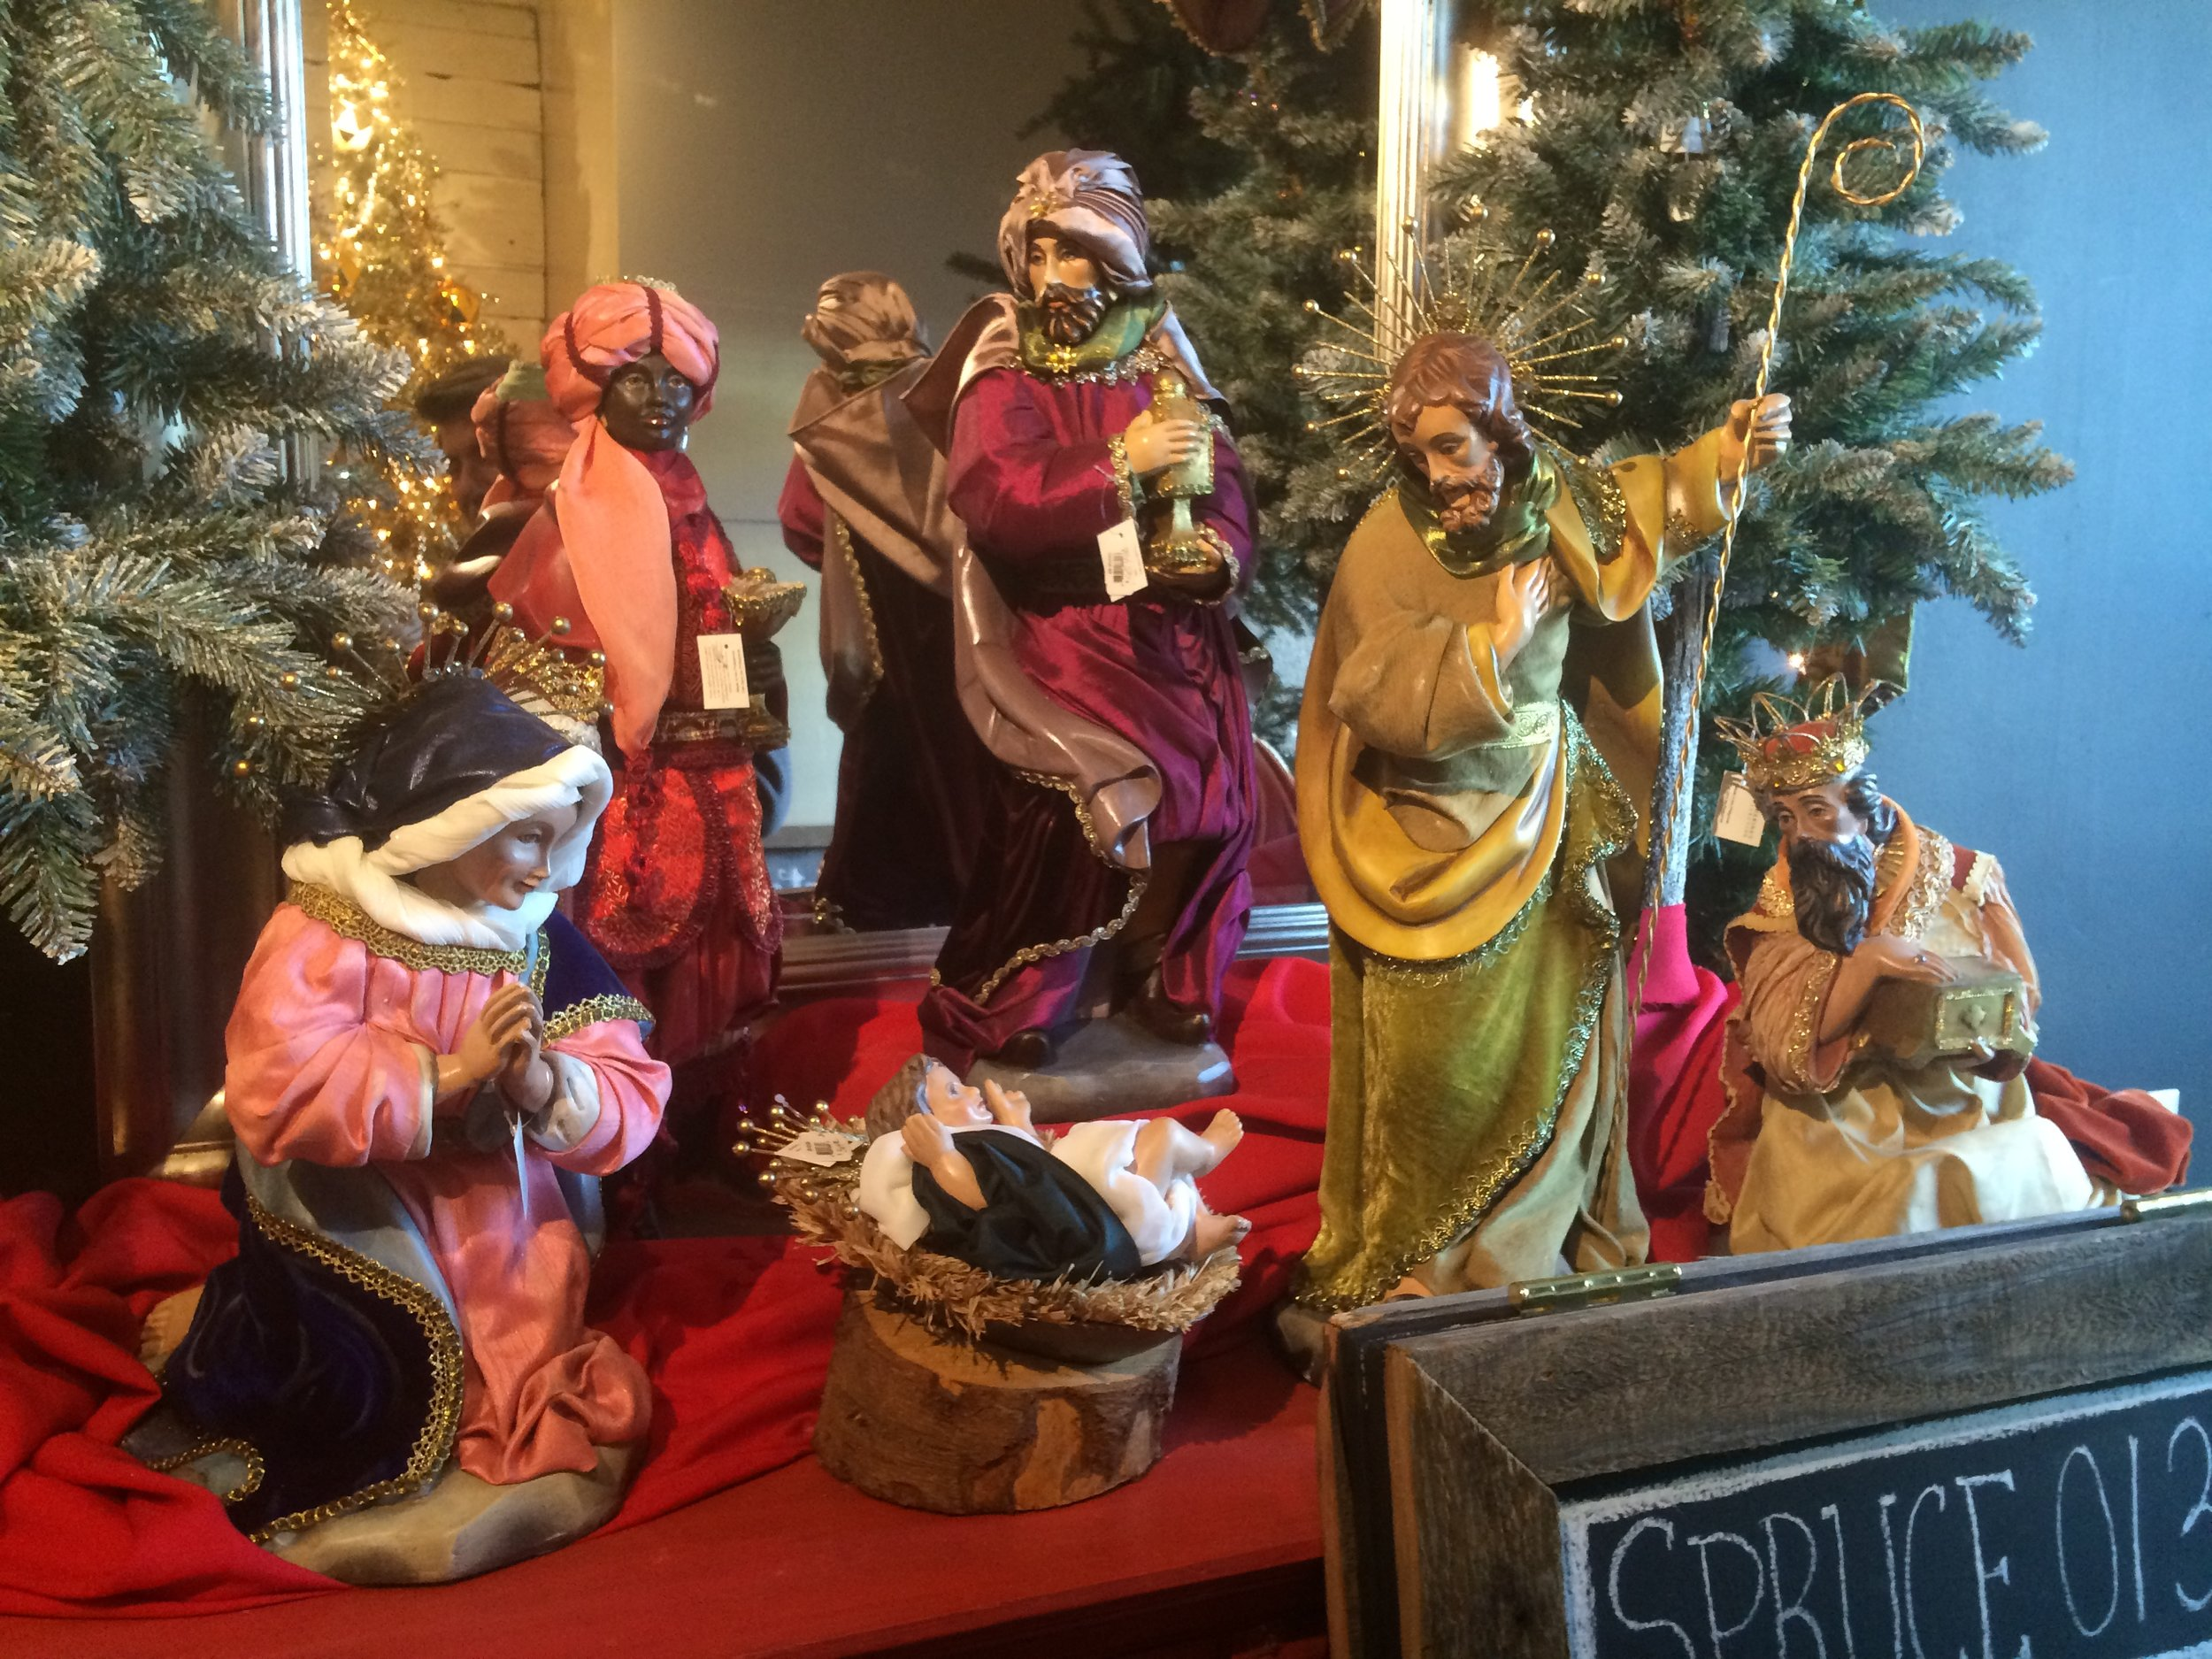 The nativity scene featuring Baby Jesus that saved his shop from fire and robbery.